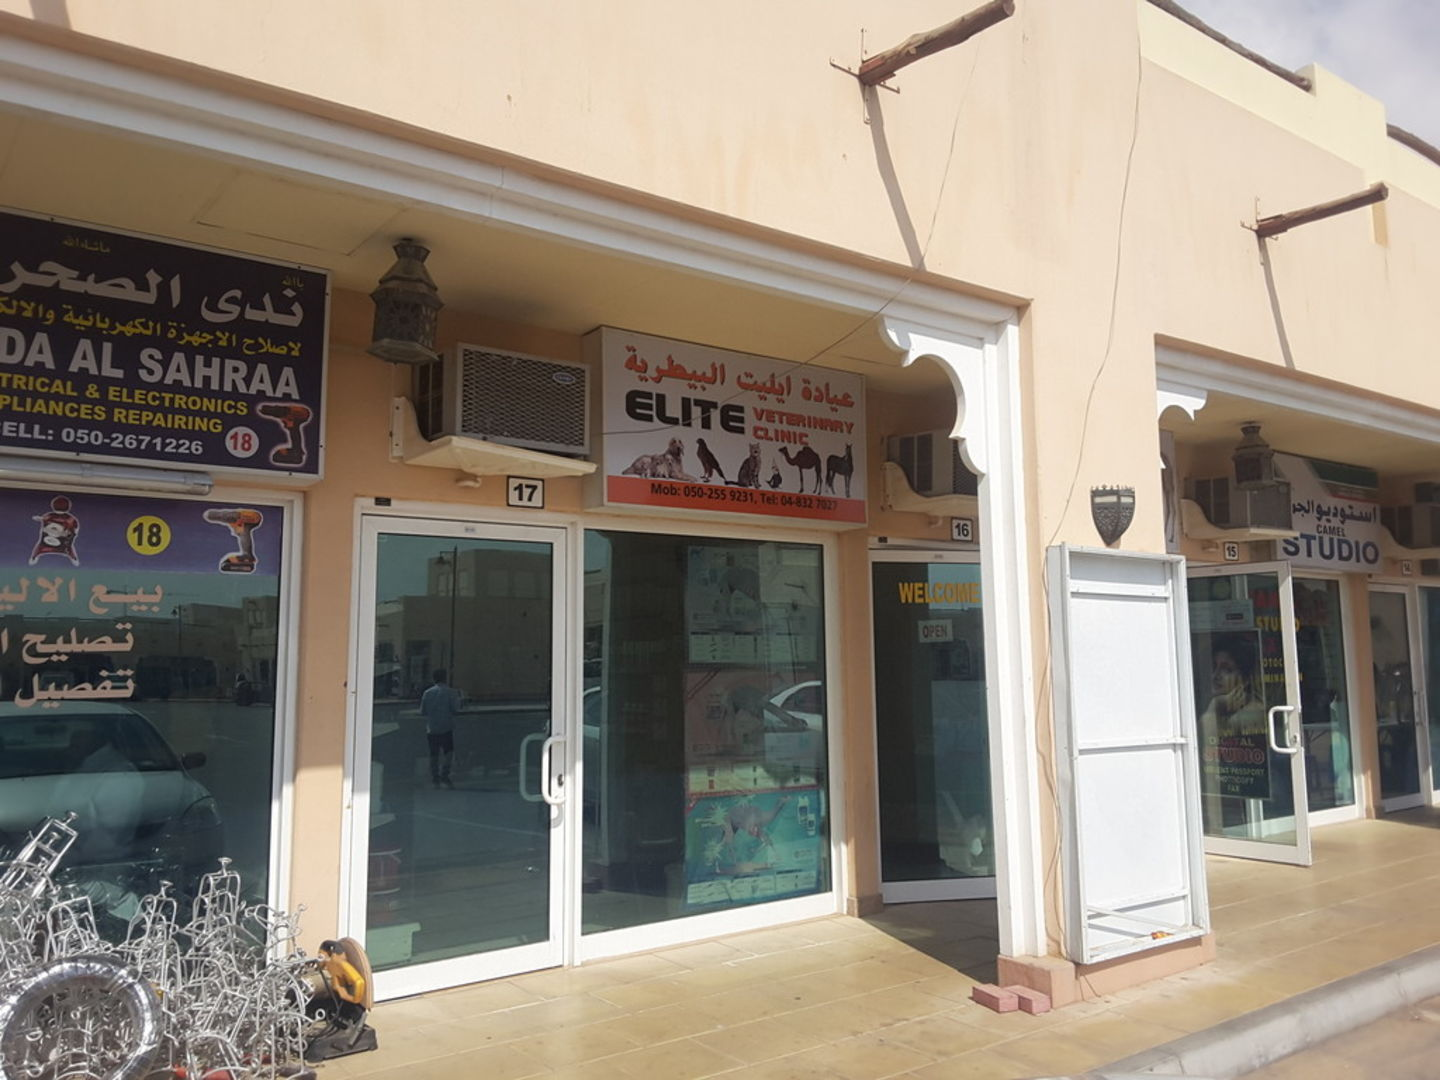 Walif-business-elite-veterinary-clinic